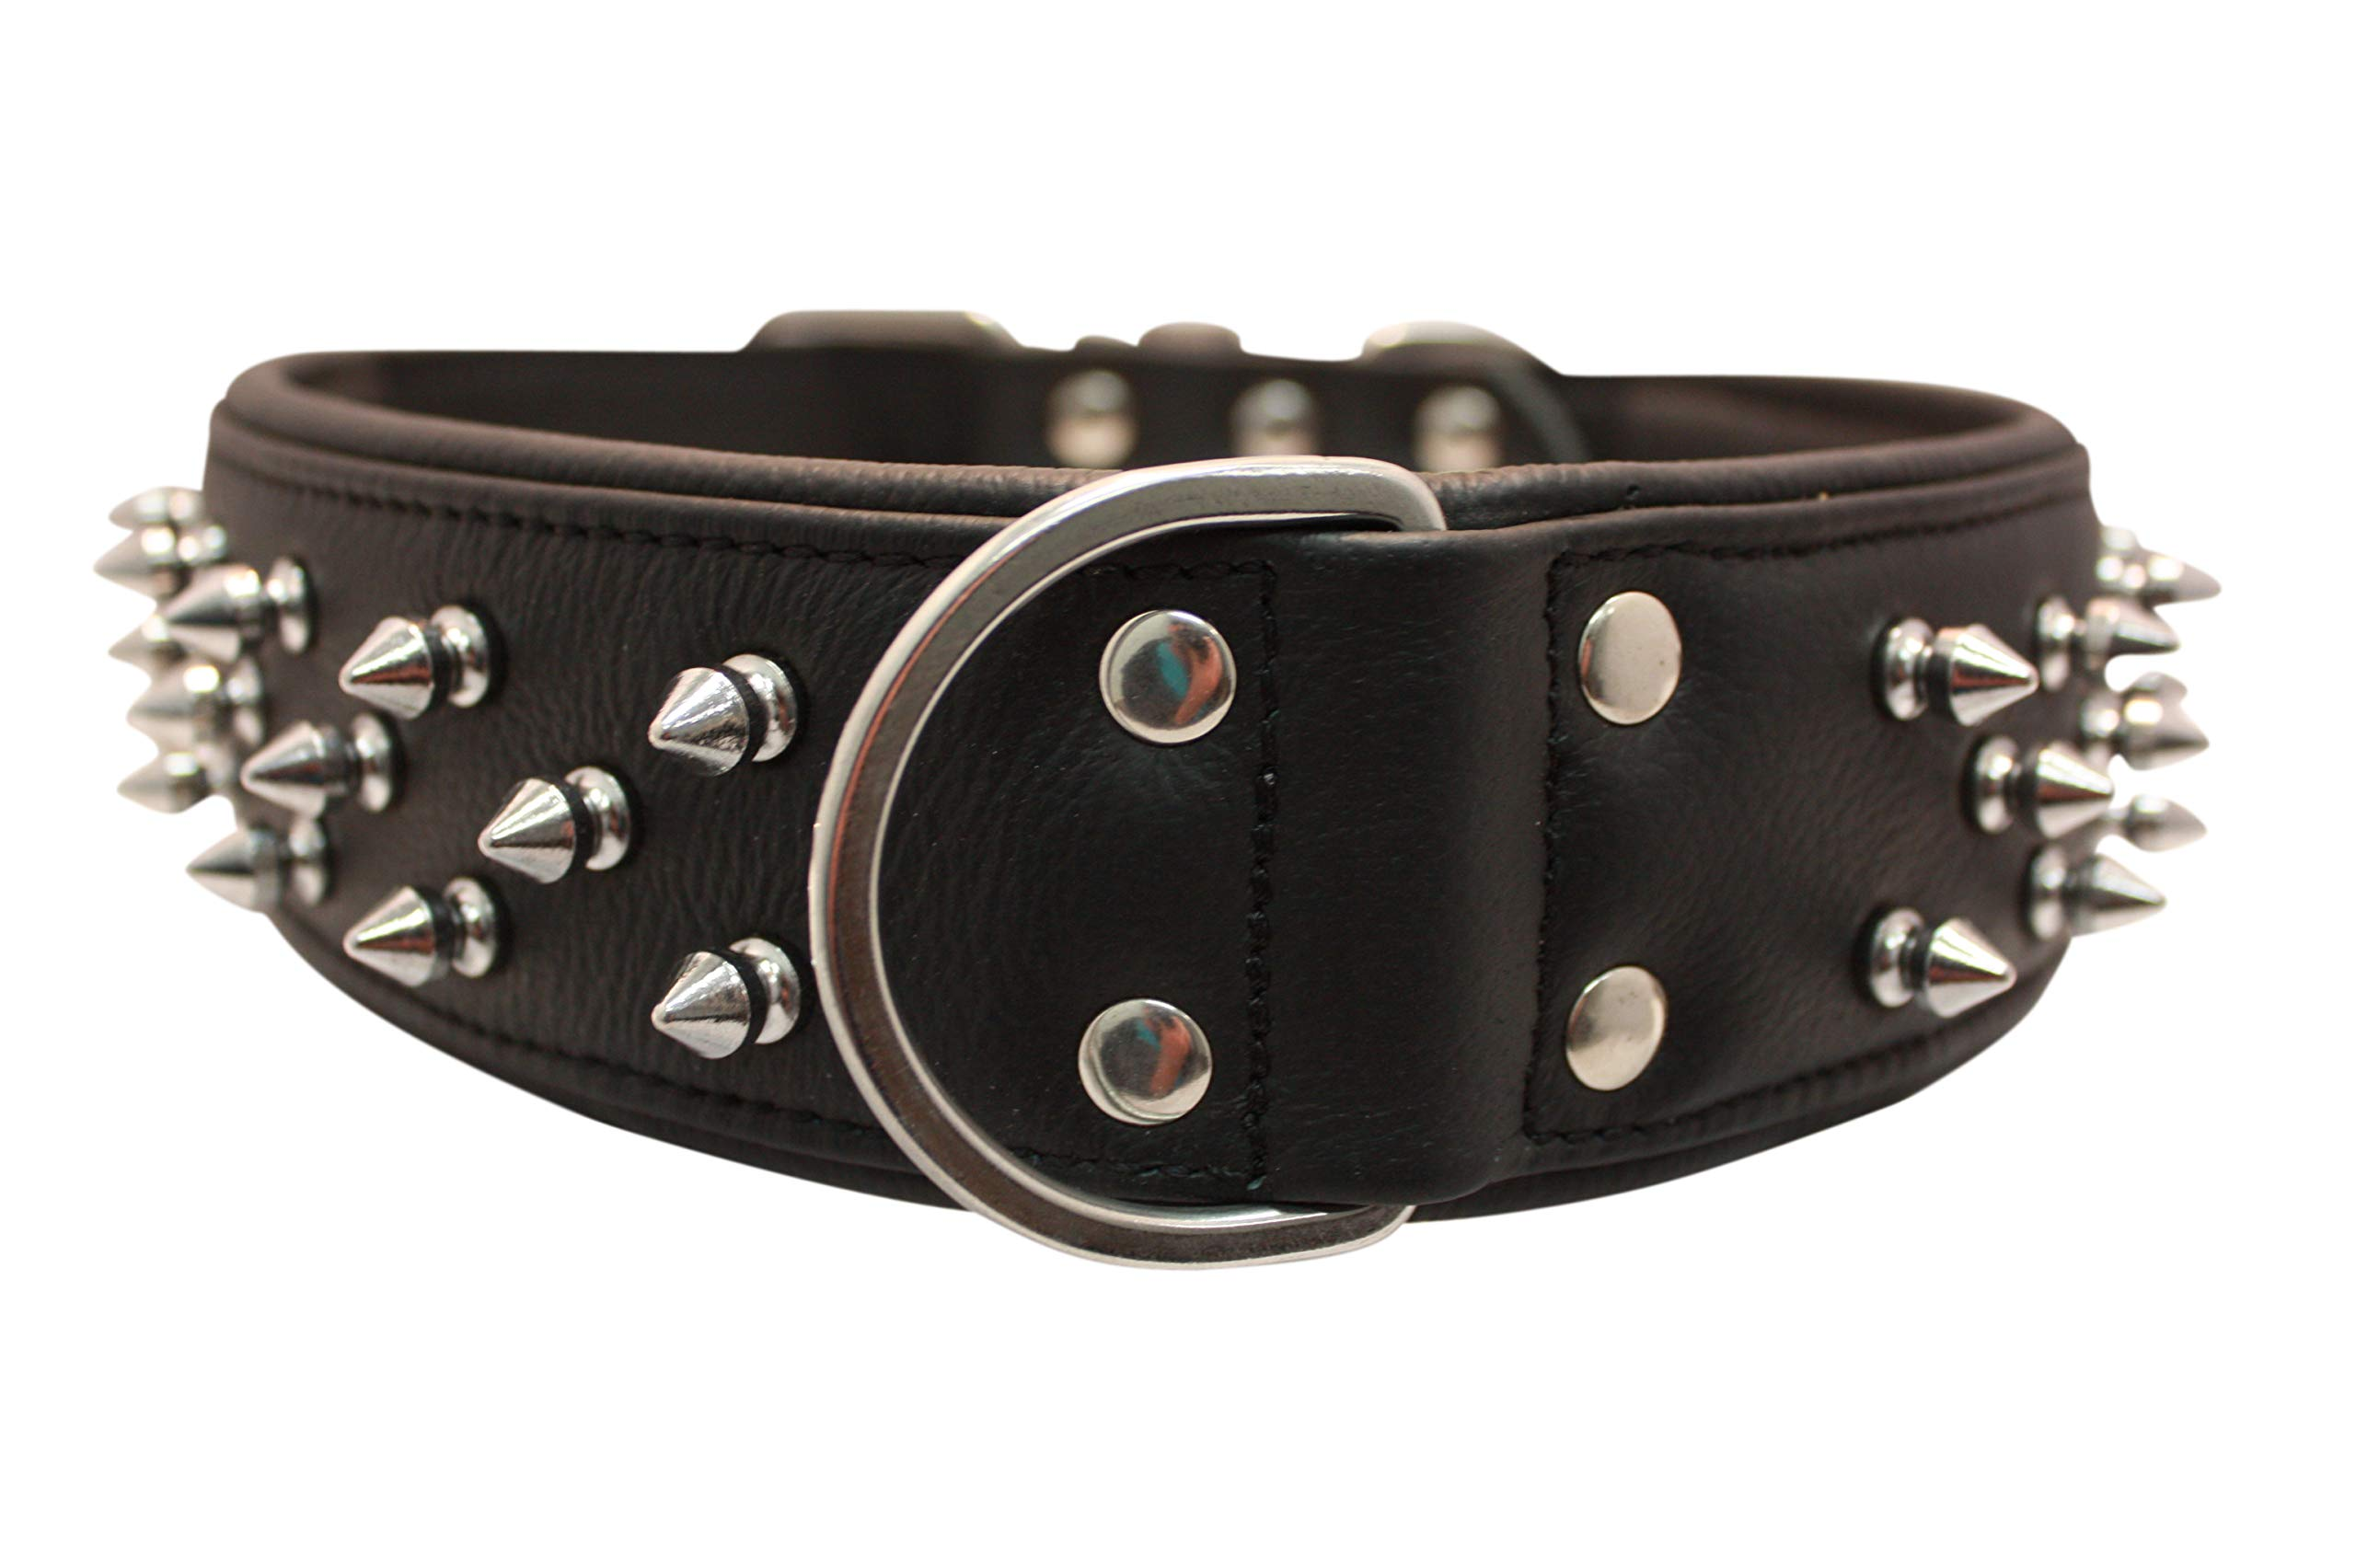 Angel, Leather Black, Multi- Line Spiked Dog Collar, 26'' x 2'', XL Fits Neck Size 19''- 23.5'' or Weights of 80-100 LBS, Super Soft Padded Leather, Amsterdam Collection